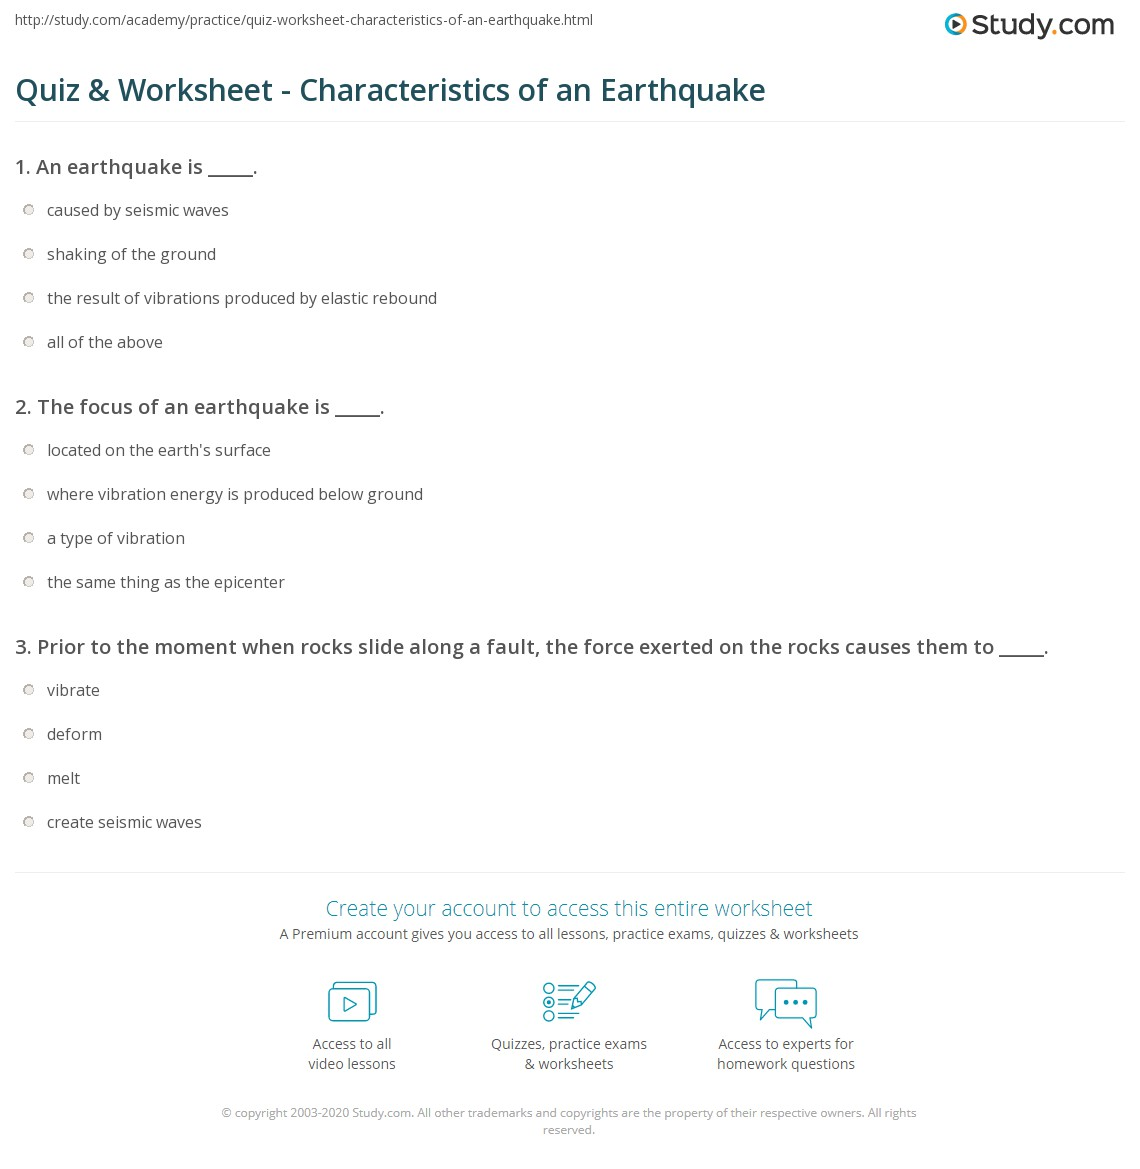 Quiz & Worksheet Characteristics of an Earthquake